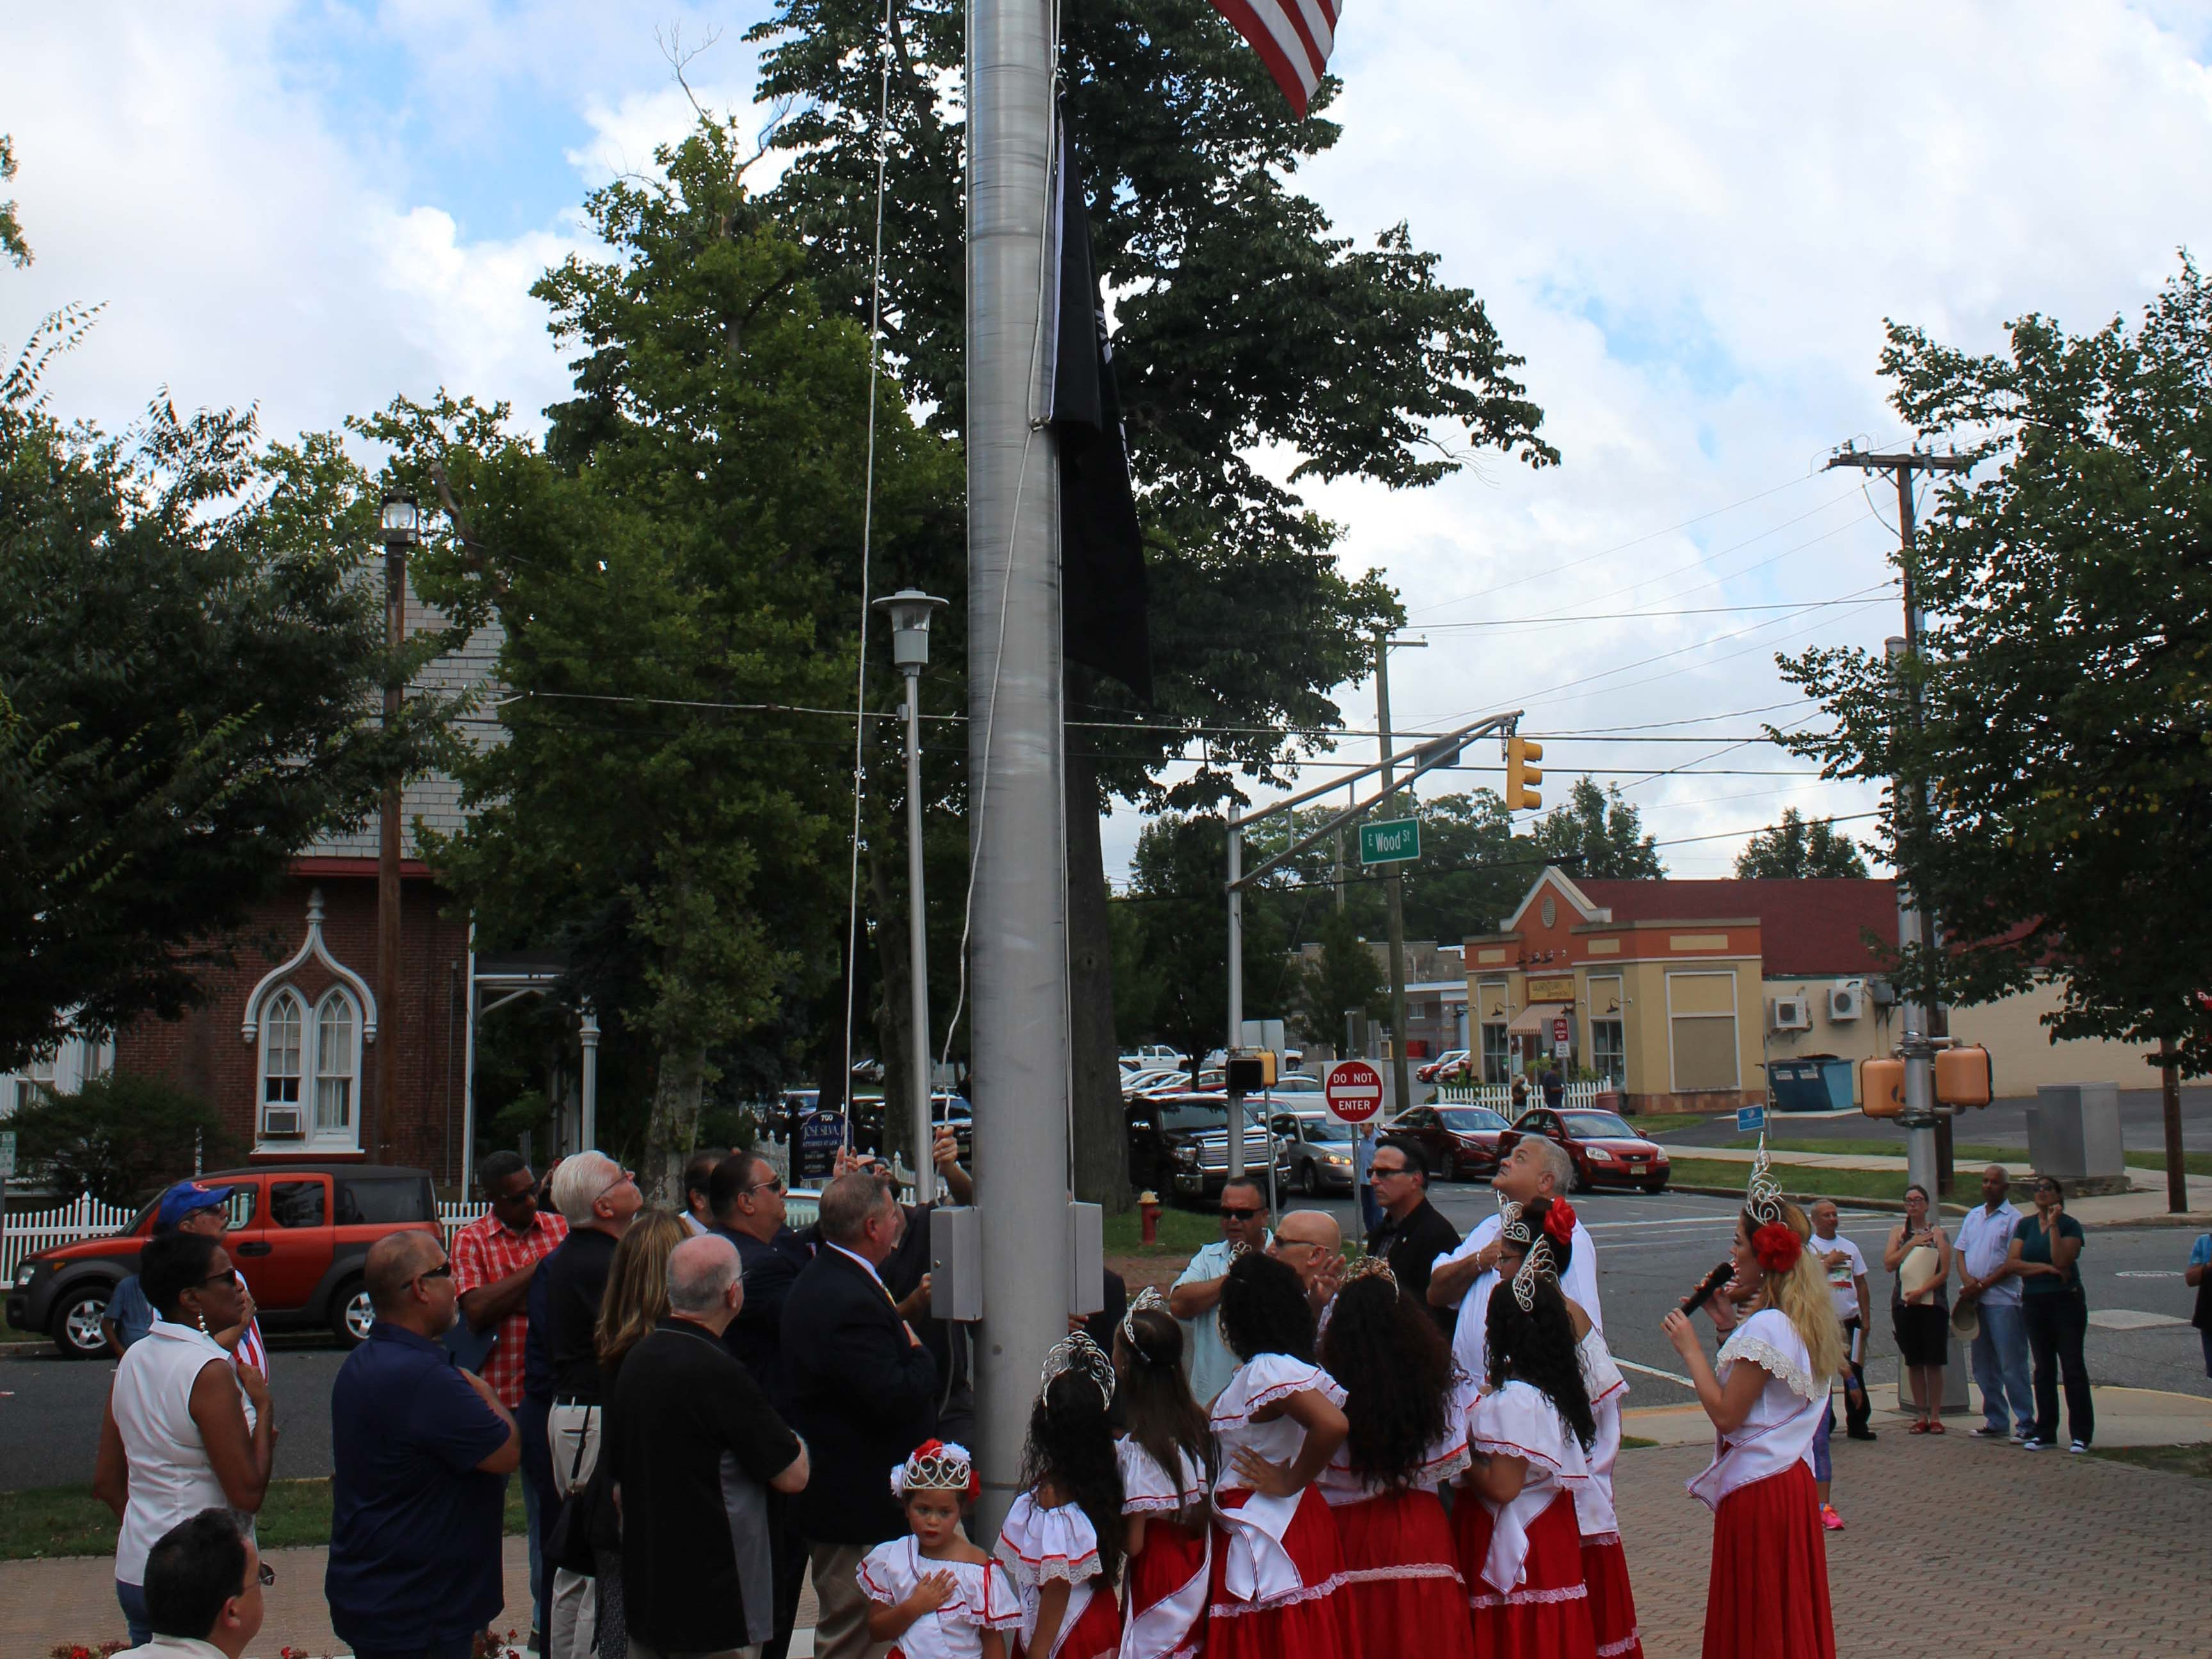 The American flag was raised to the national anthem during the start of the Puerto Rican Festival in Vineland on Sunday, July 22, 2018.